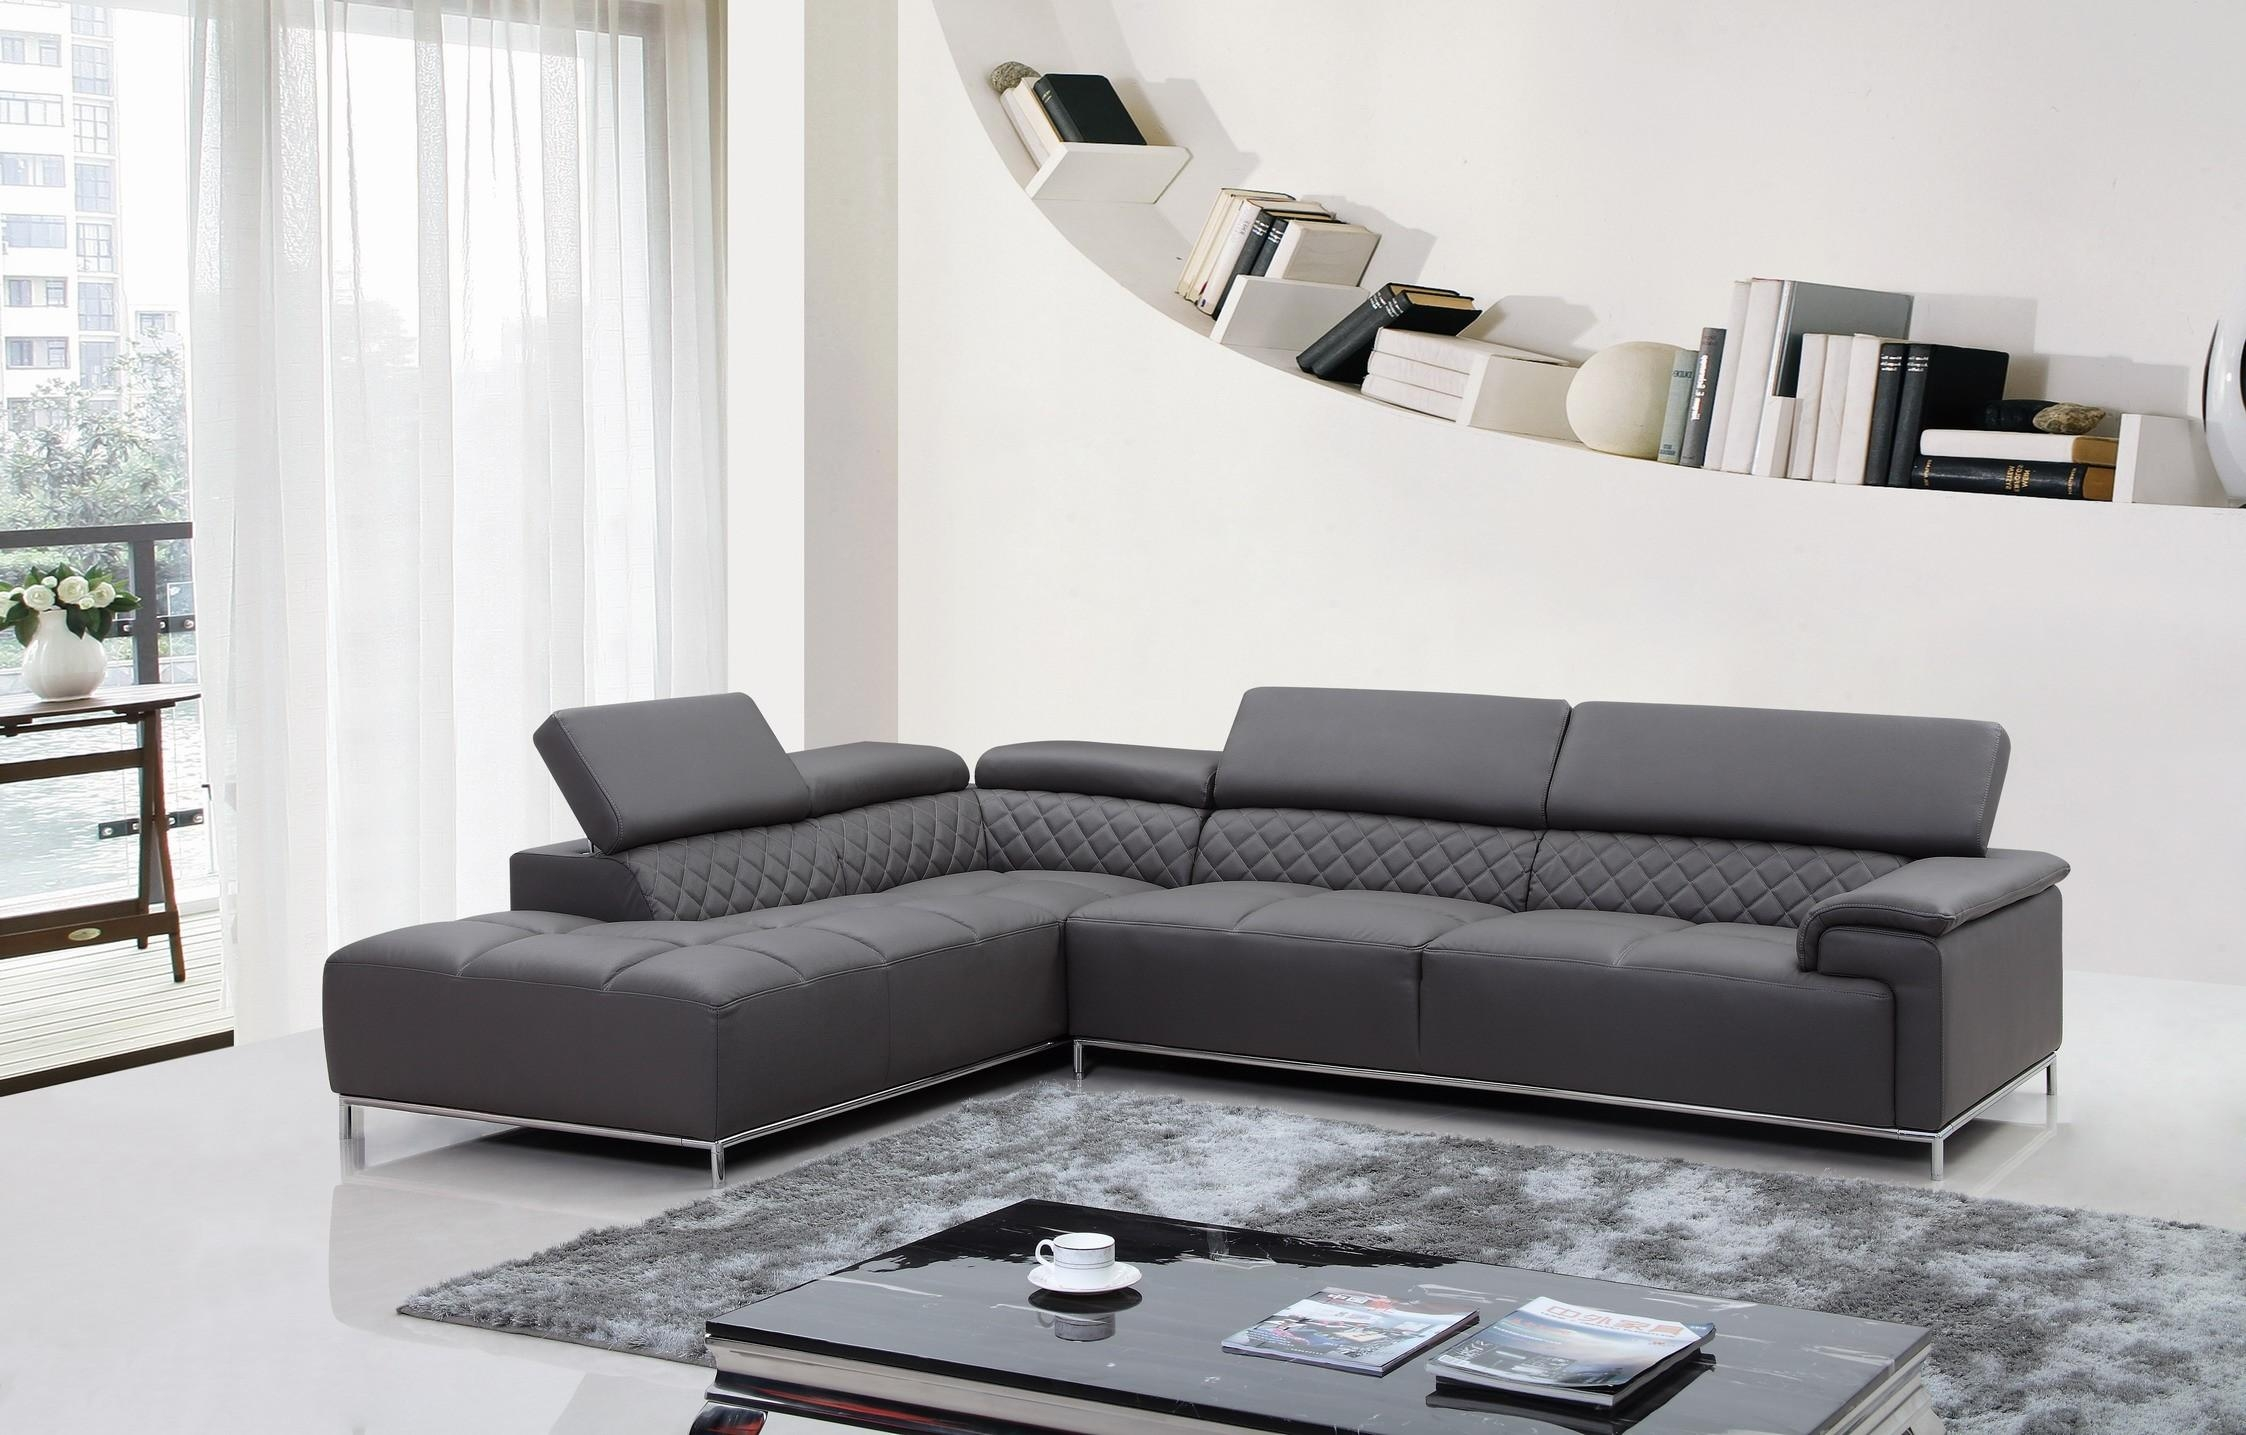 Furniture: Modern Leather Sectional Sofa And Black Leather Modern In Leather Modern Sectional Sofas (Image 10 of 20)